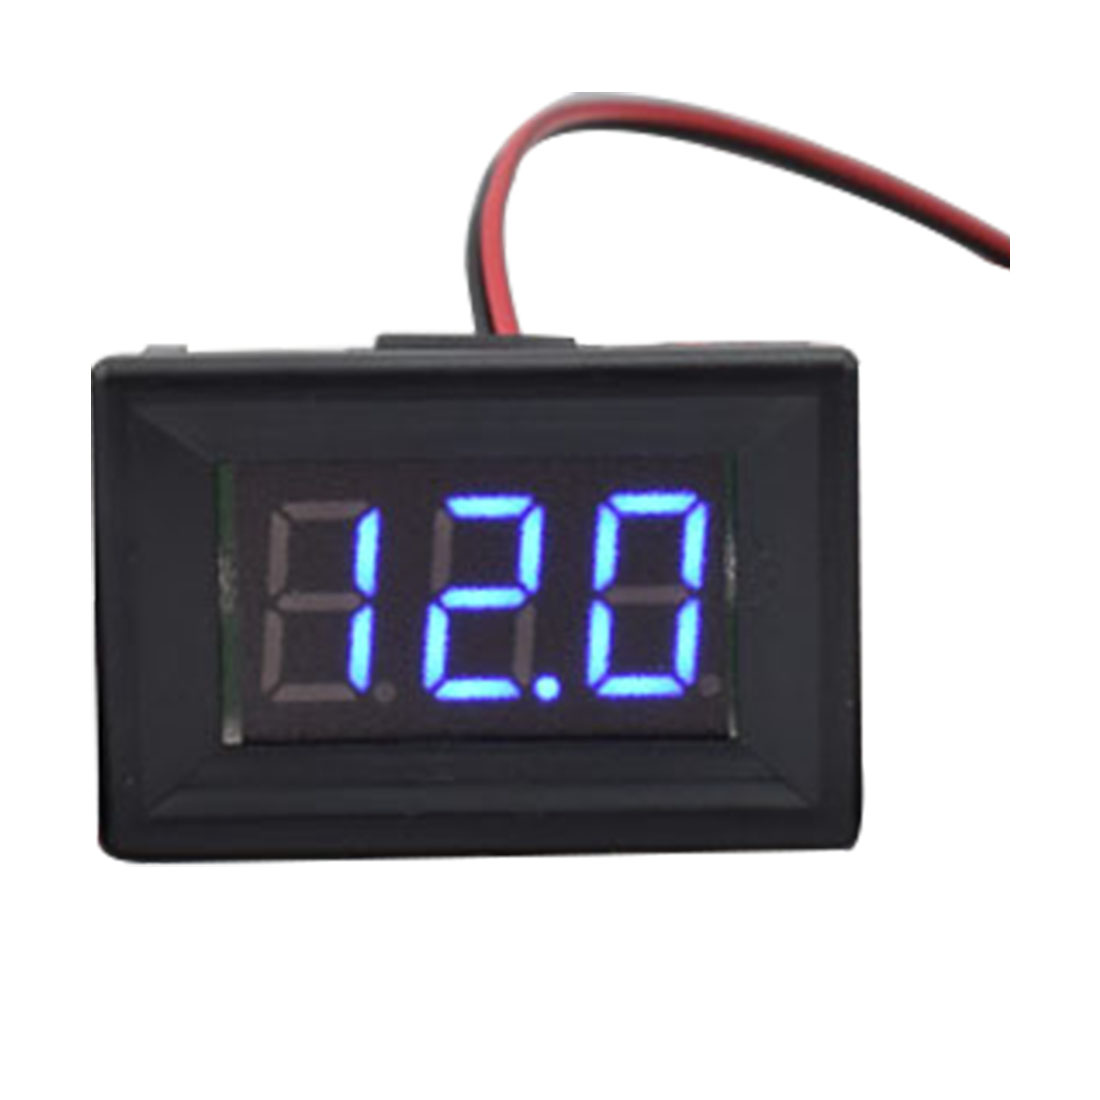 1pcs Digital Voltmeter Two Wires 0.36 Inch LED Display Blue DC 4.50V-30.0V Digital Panel Voltage Meter Voltage Indicator